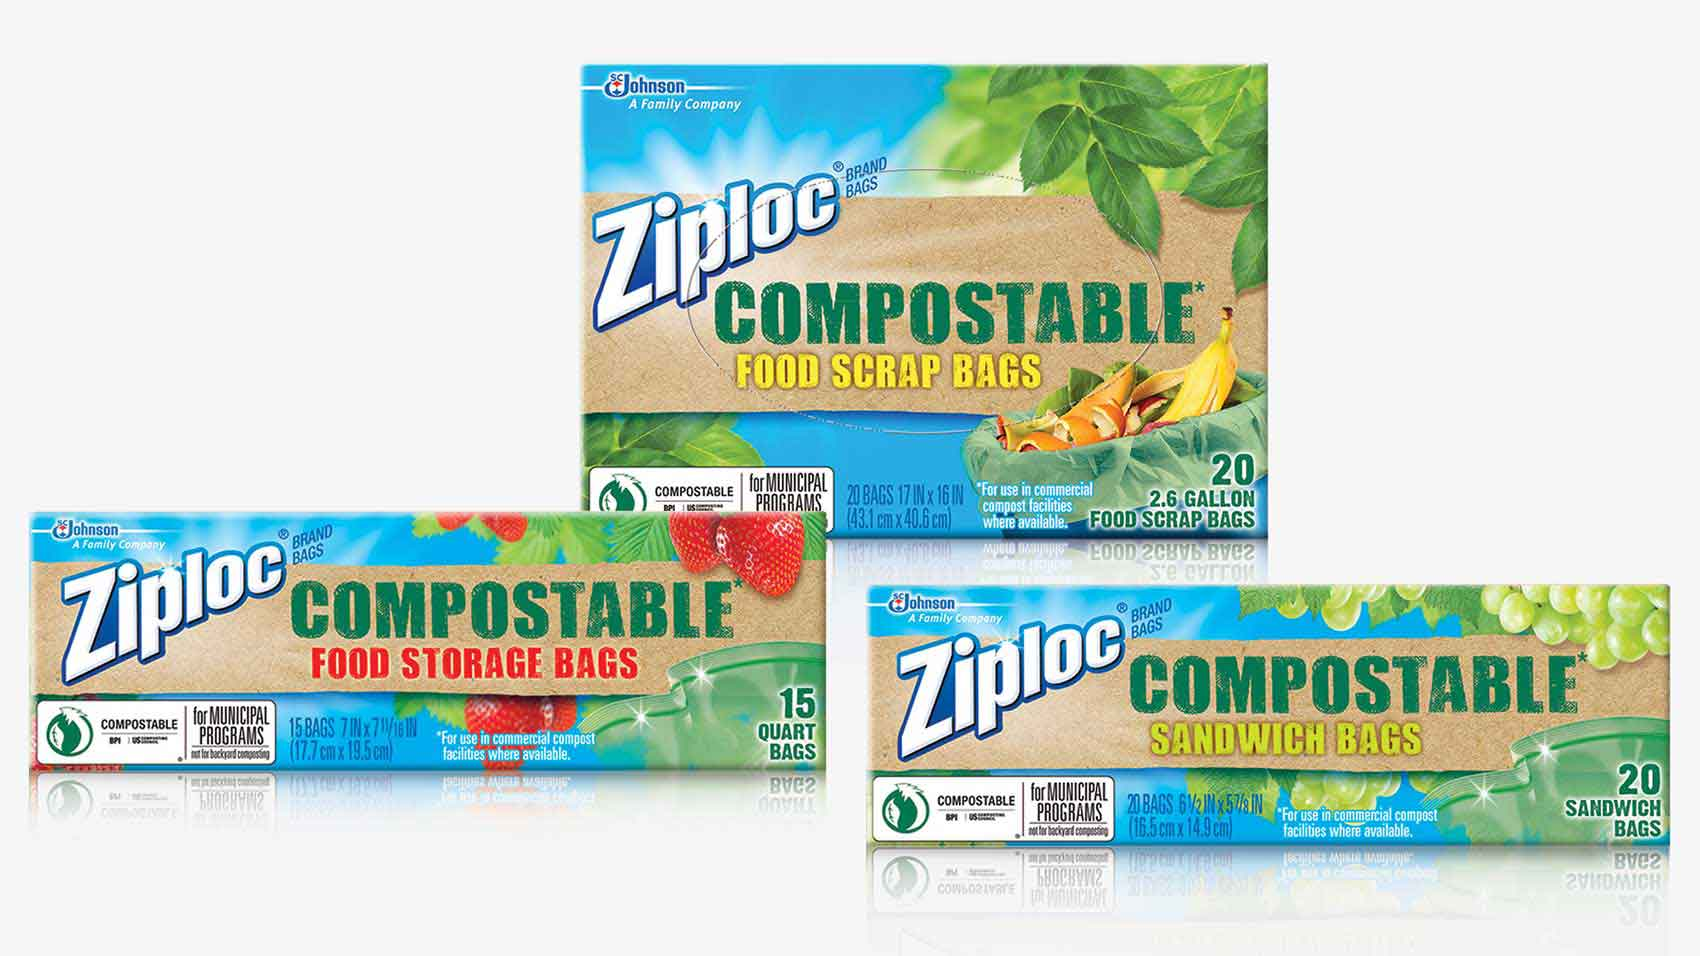 SC Johnson Ziploc Compostable Bag Products